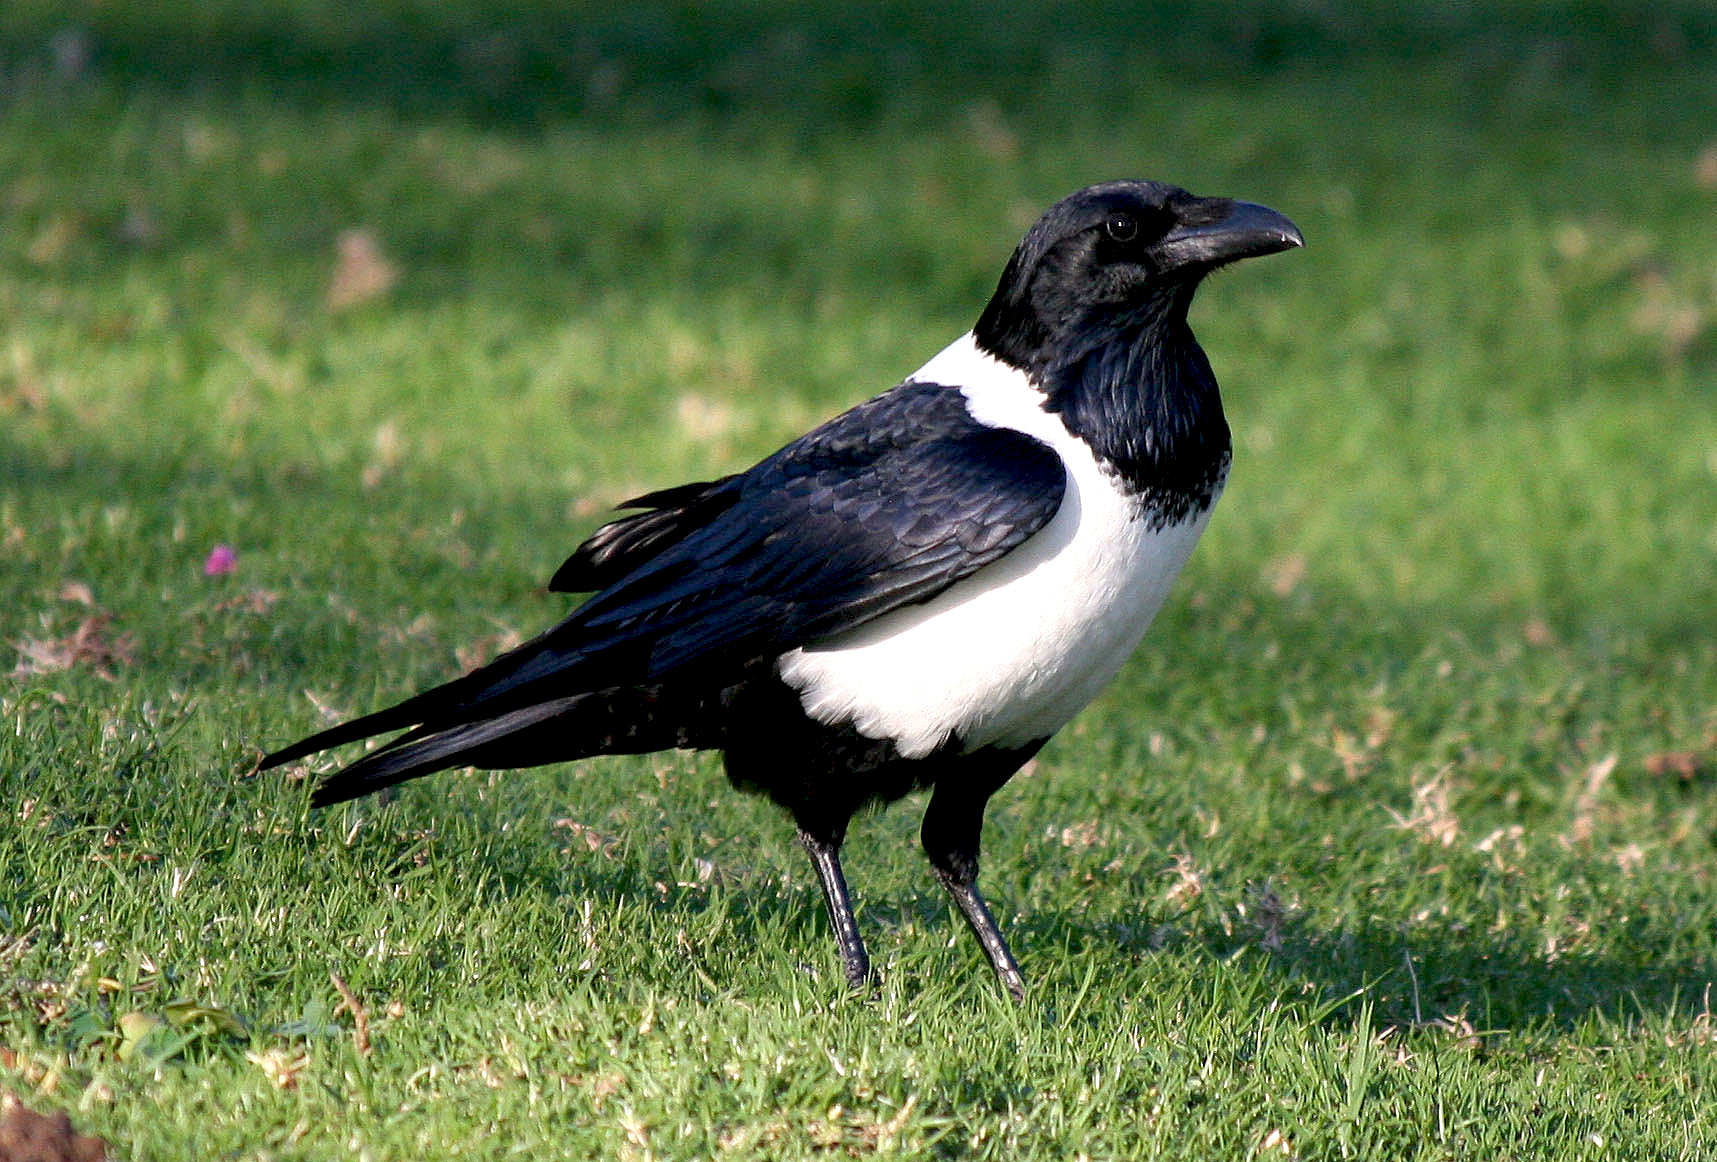 birds crows africa south breast bill avise called 2007